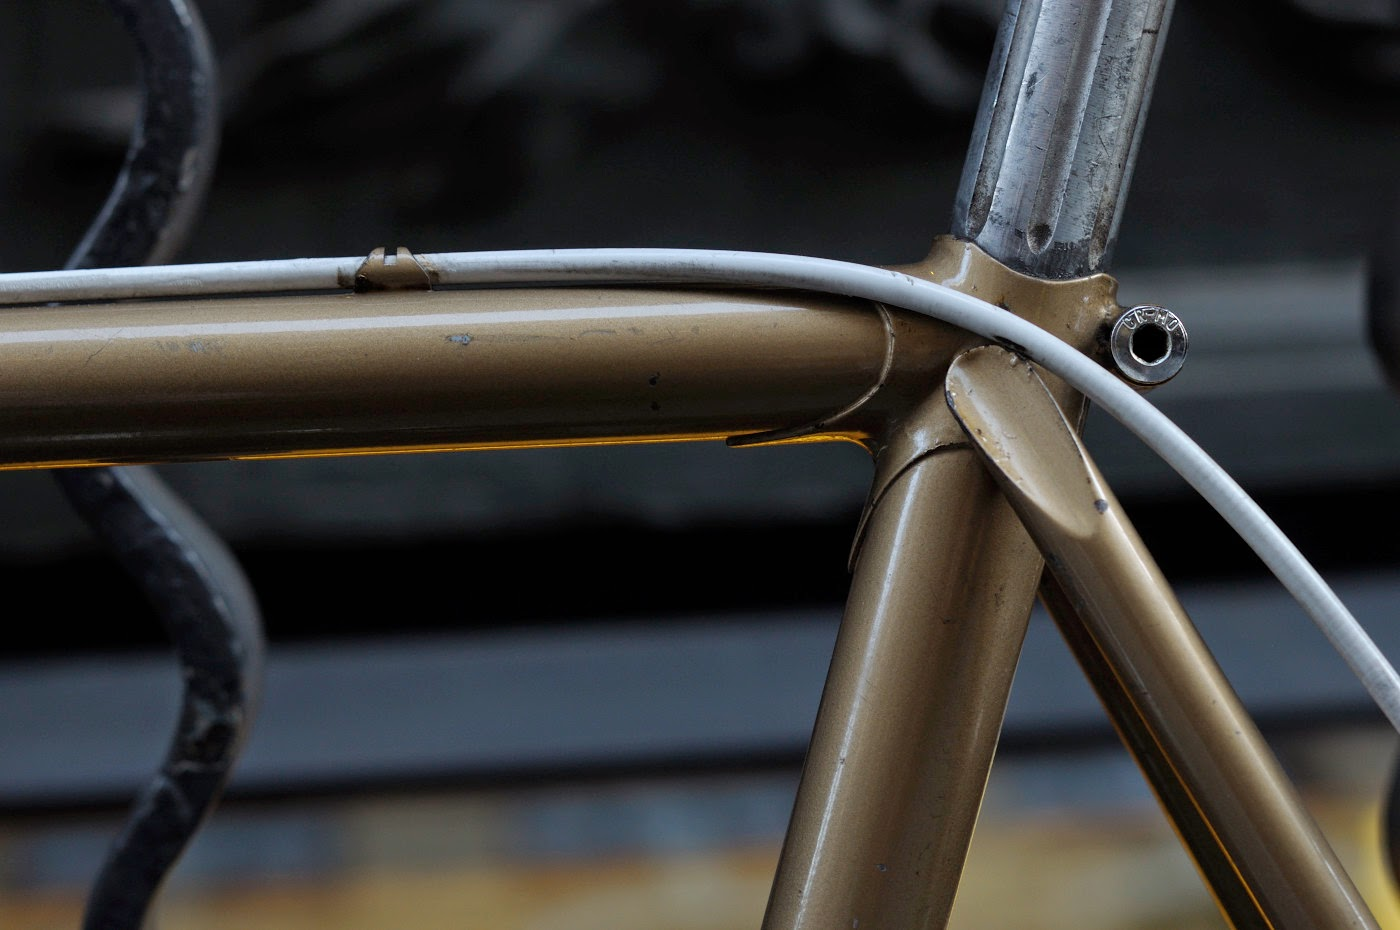 Bespoke, vintage, custom, Tim Macauley, The Biketorialist, The Light Monkey Collective, Melbourne, flinders lane, bicycle, road bike, Apollo, bike, setup, shimano, 600, groupset, lugging, lugs, seat tube,